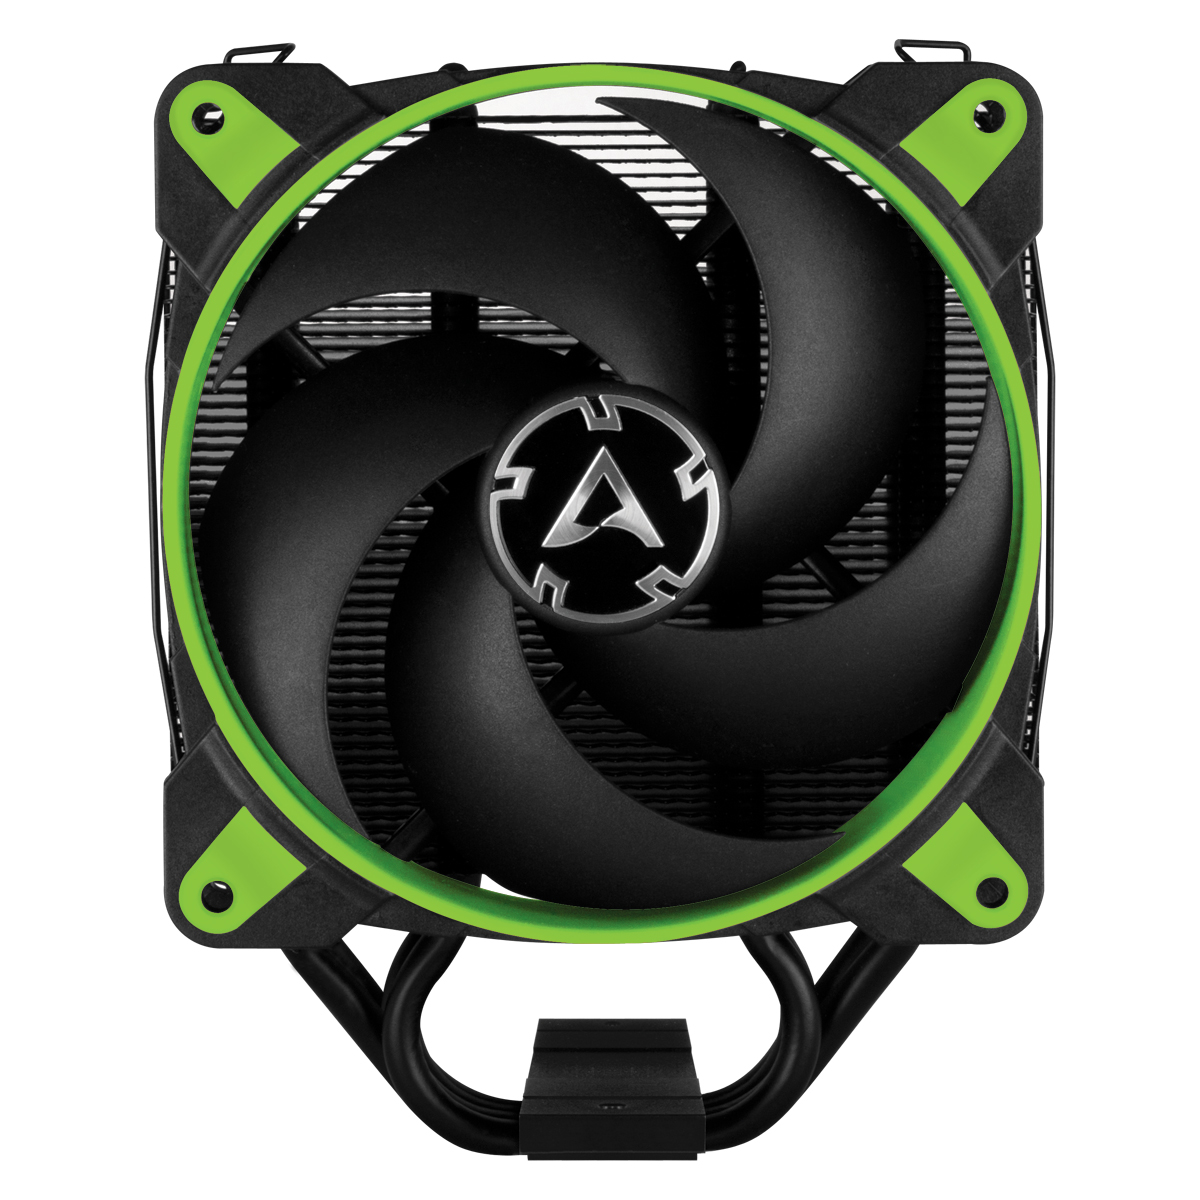 Tower CPU Cooler with BioniX P-Fan ARCTIC Freezer 34 eSports (Green) Front View